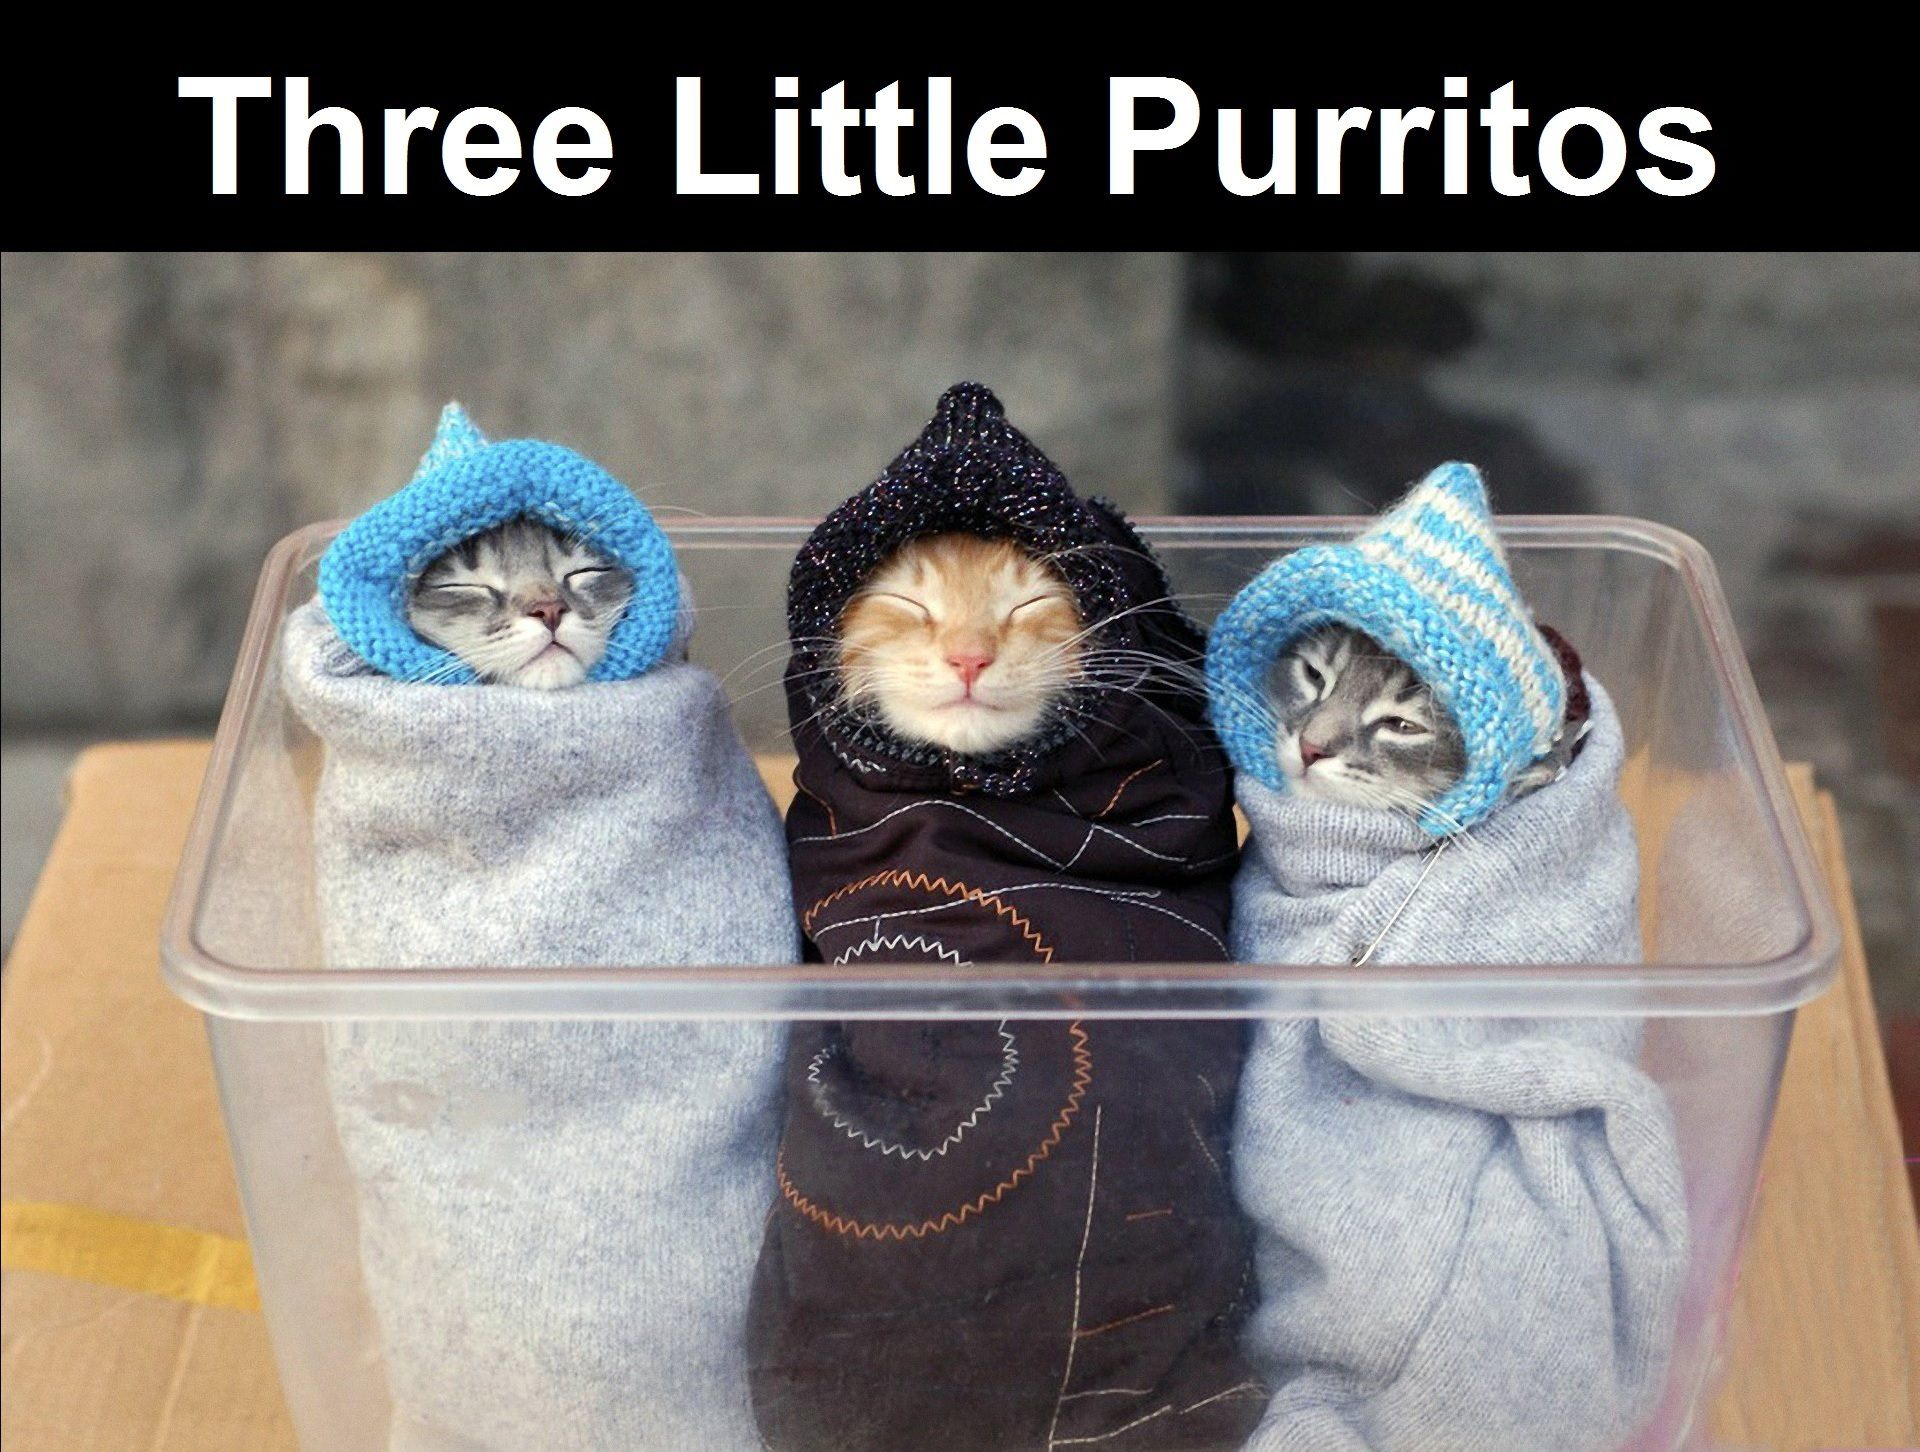 Three Little Purritos